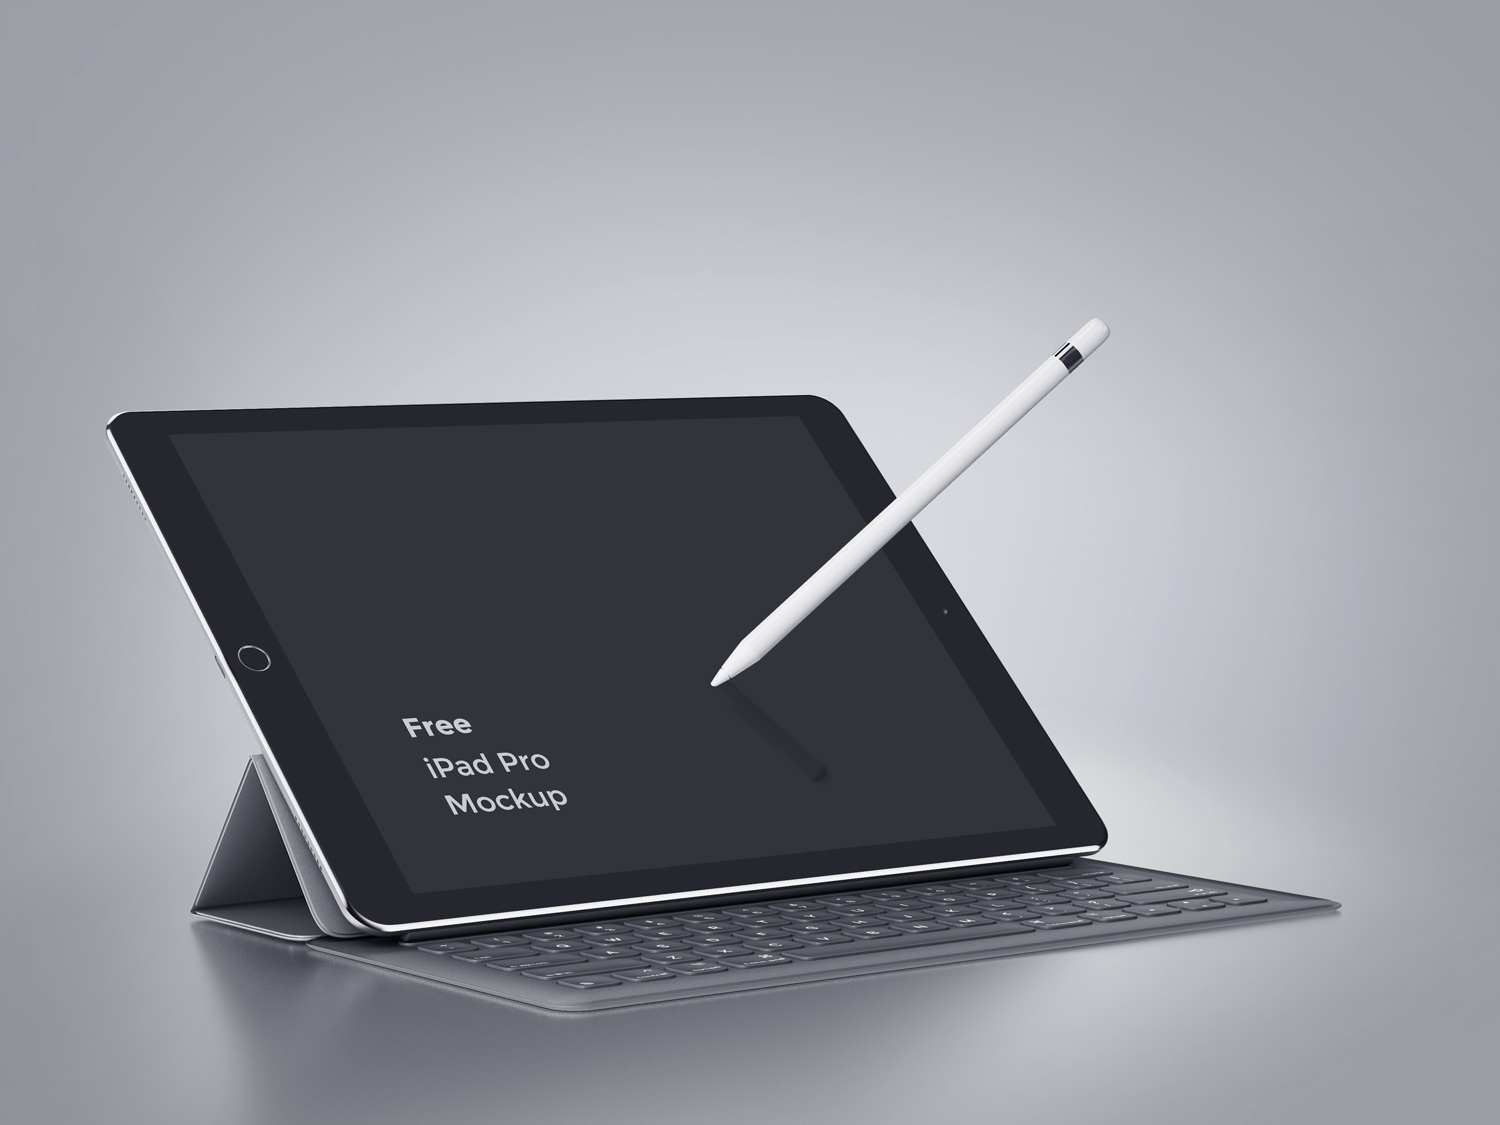 iPad-Pro-Mock-Up-Smart-Keyboard